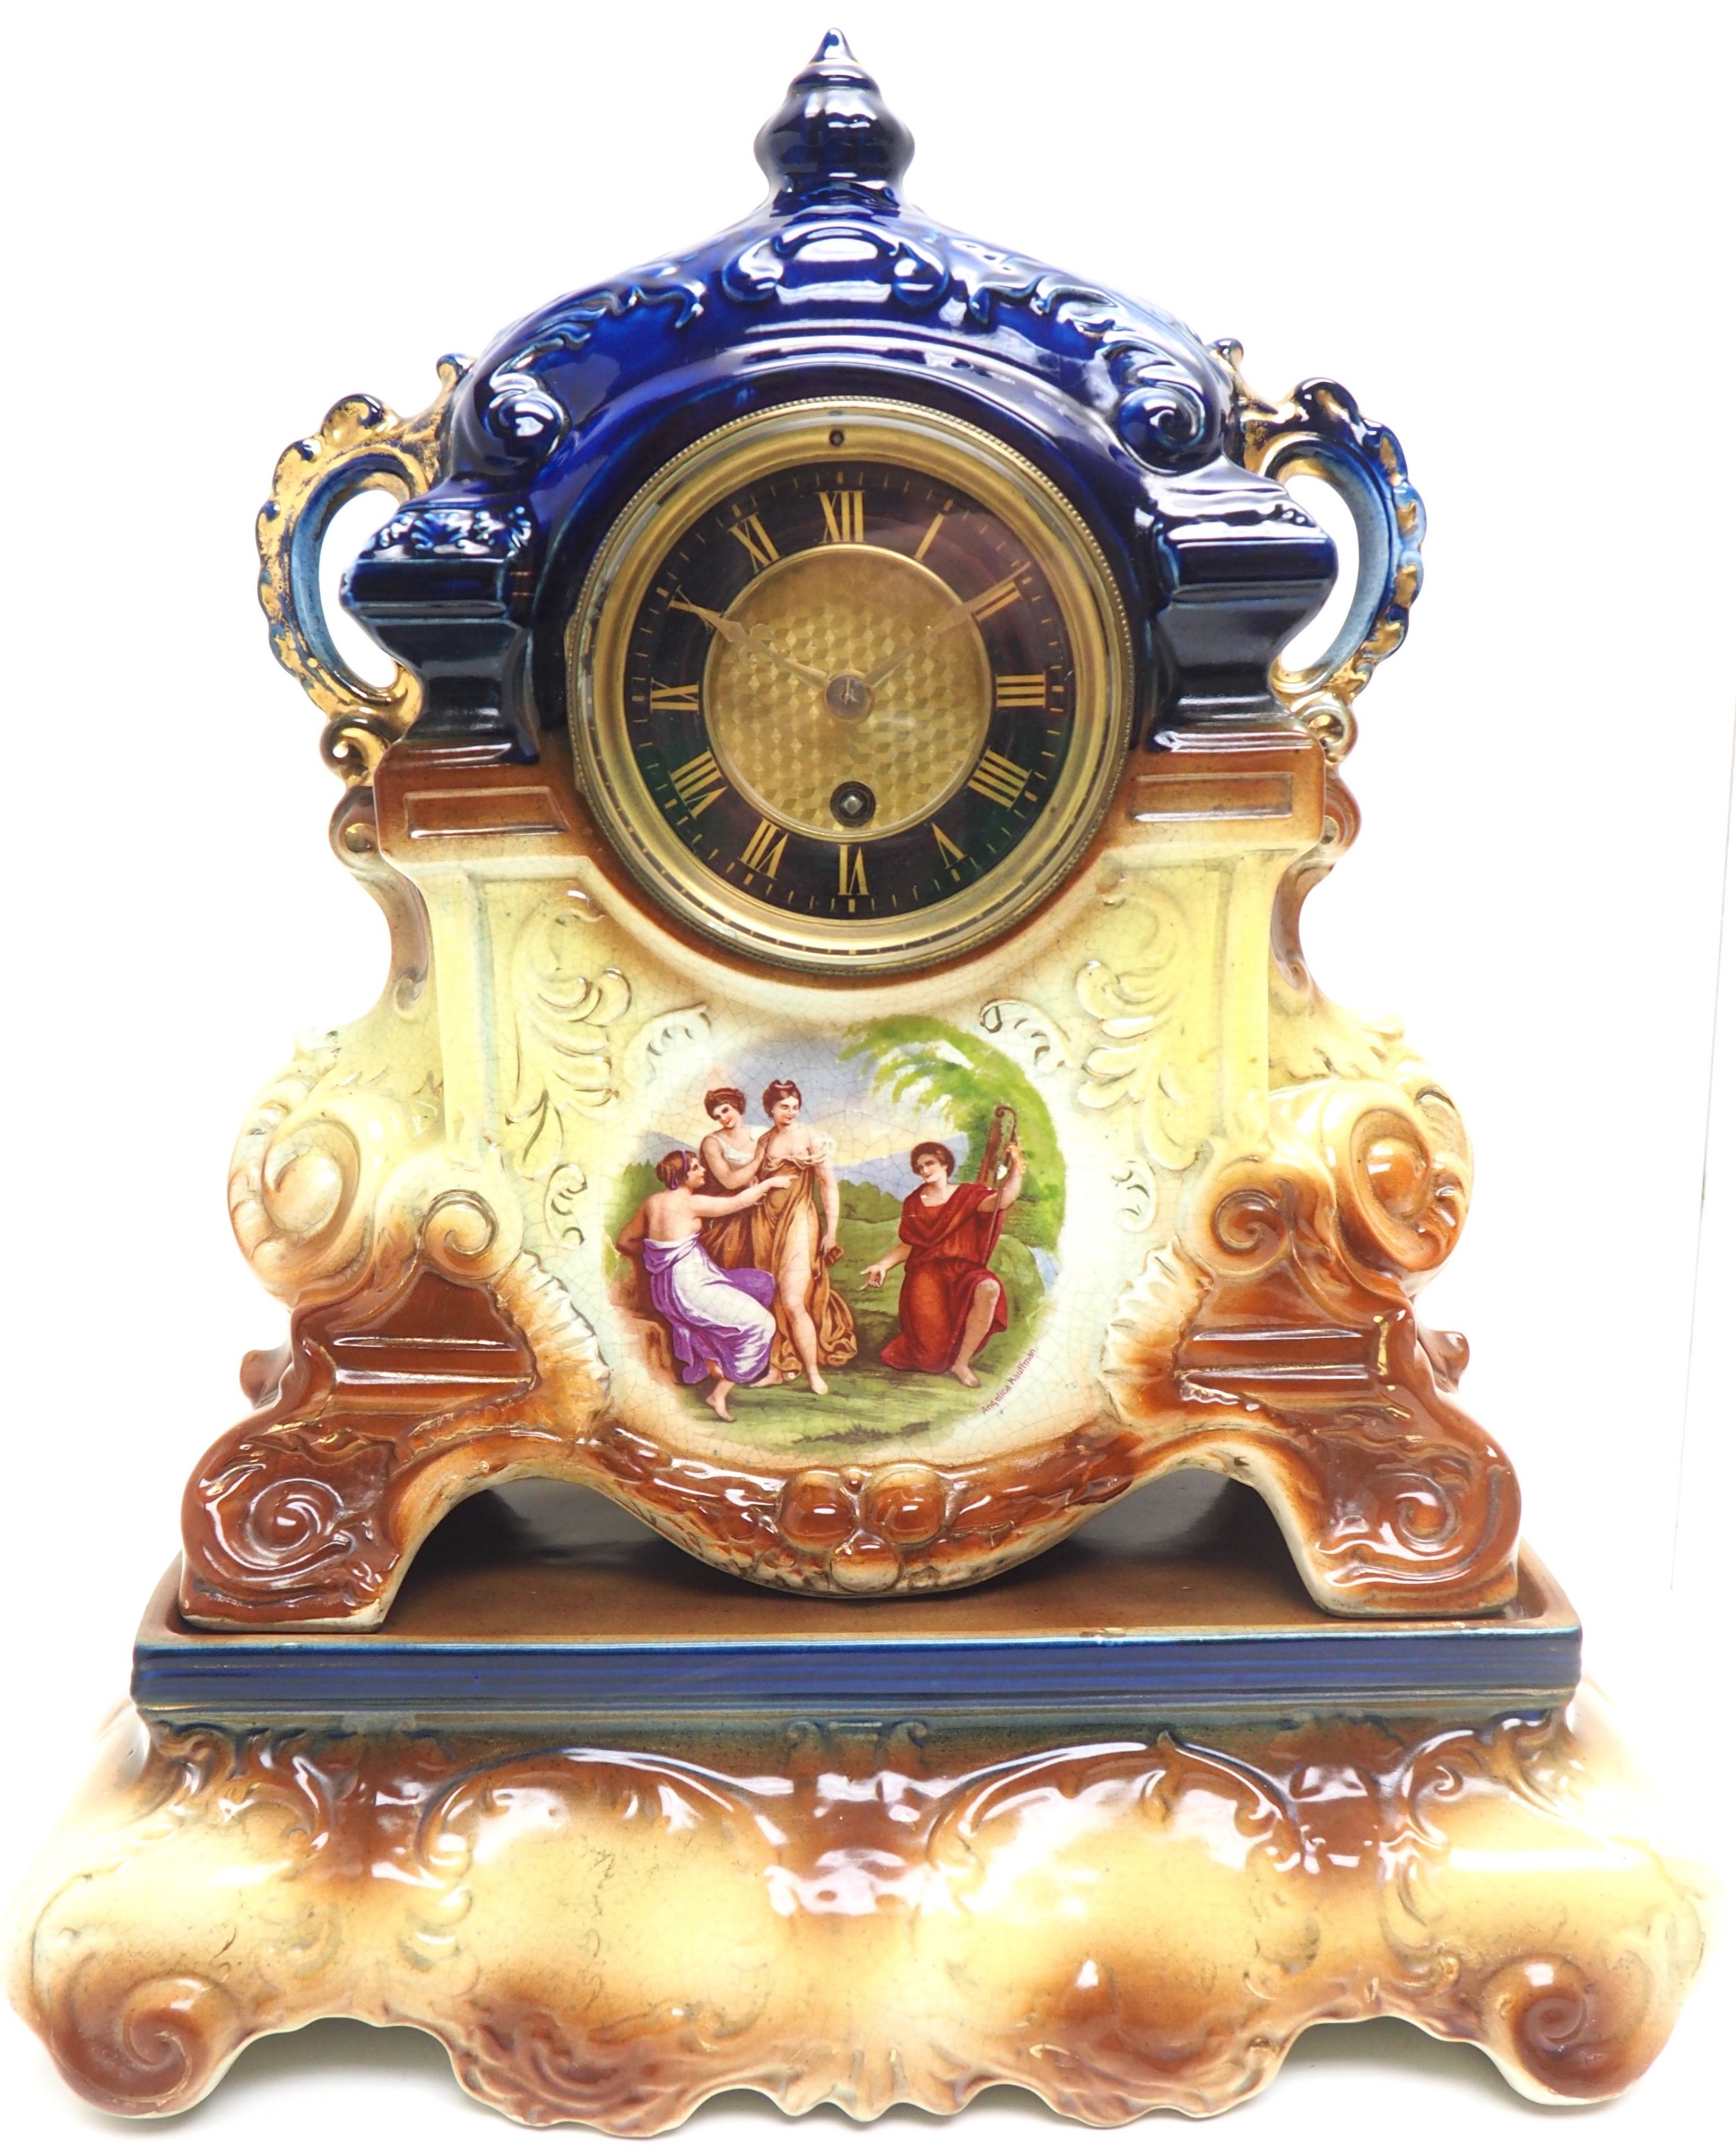 antique 8day porcelain mantel clock classical blue earth glazed french mantle clock